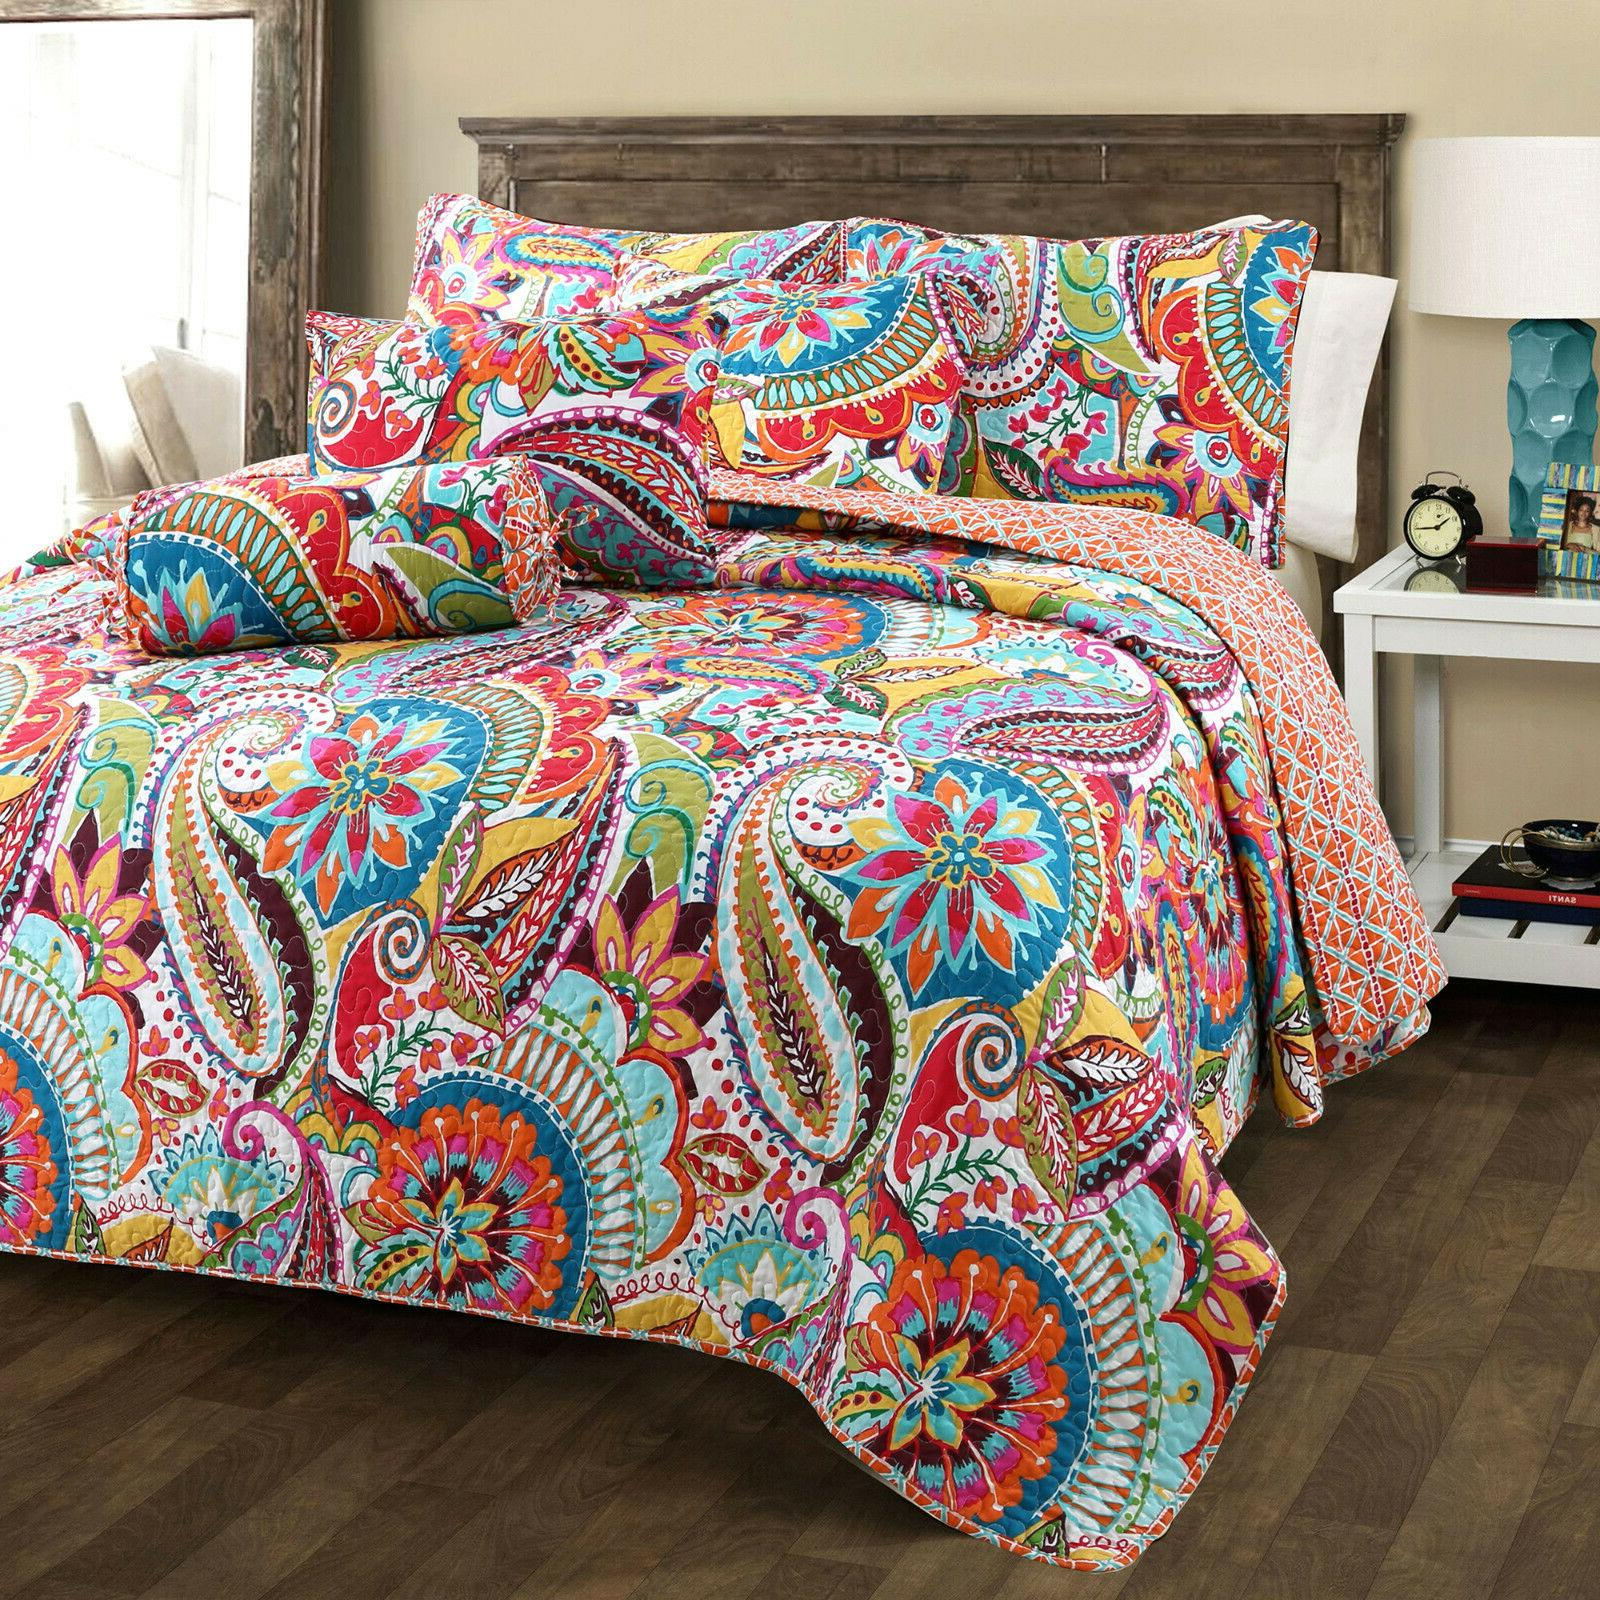 gypsy 3 piece reversible quilt set bedspread